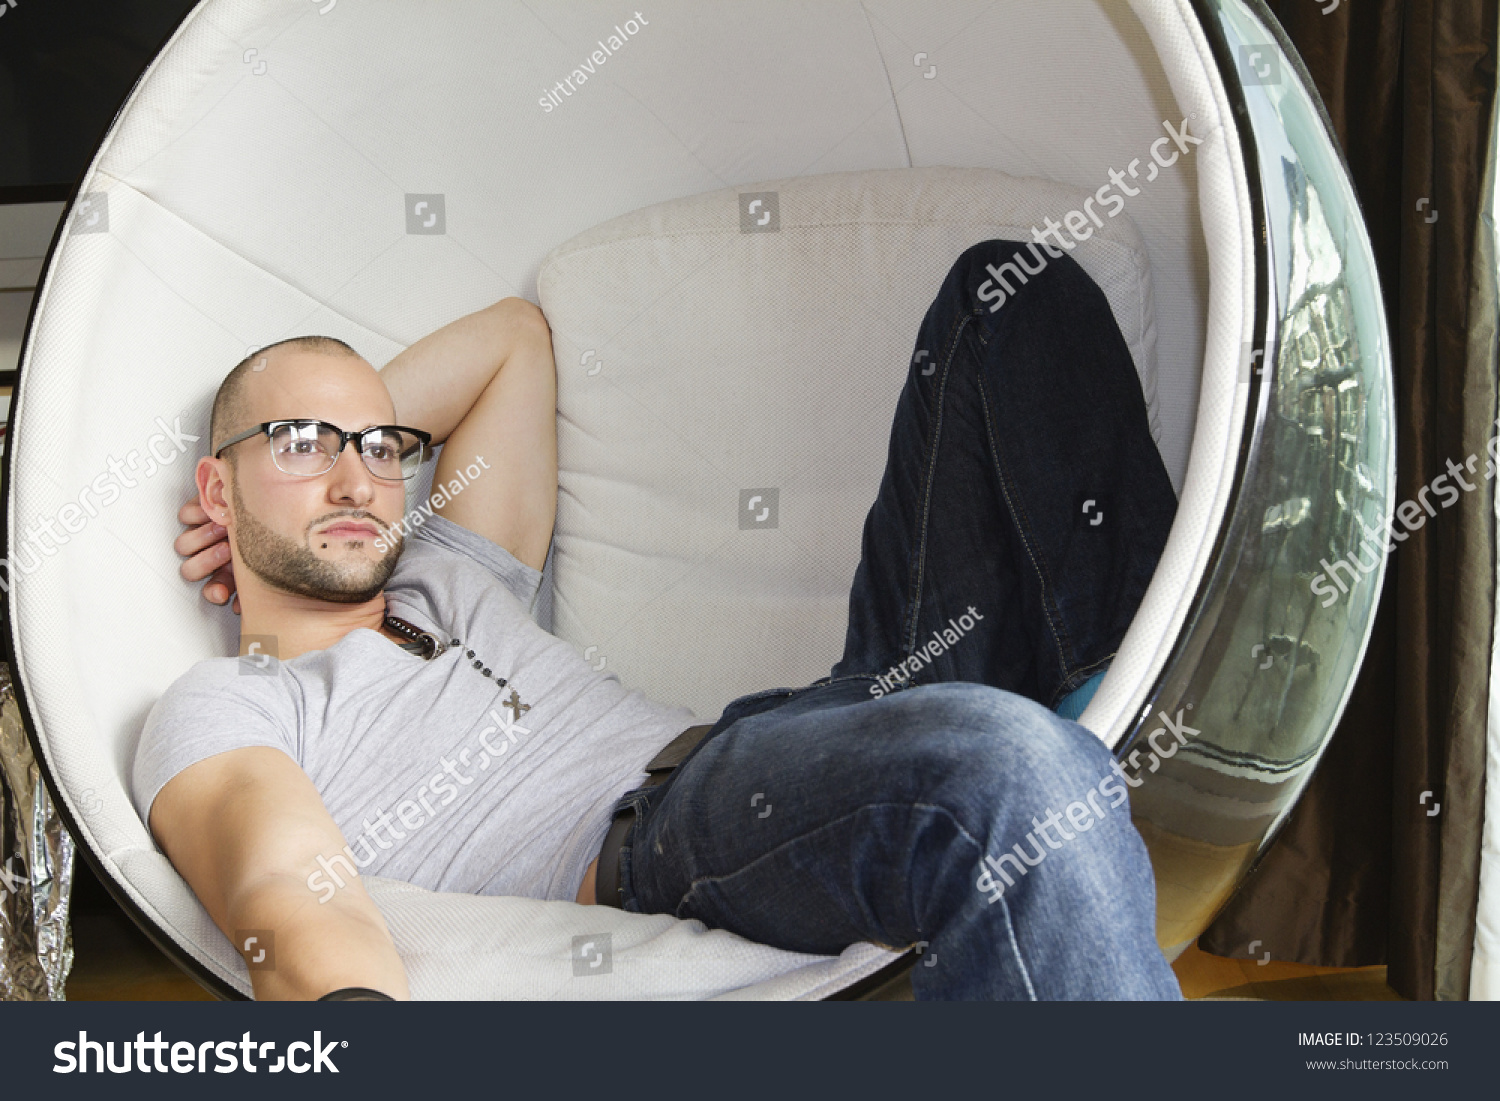 Thoughtful Man Sitting In A Round Egg Chair